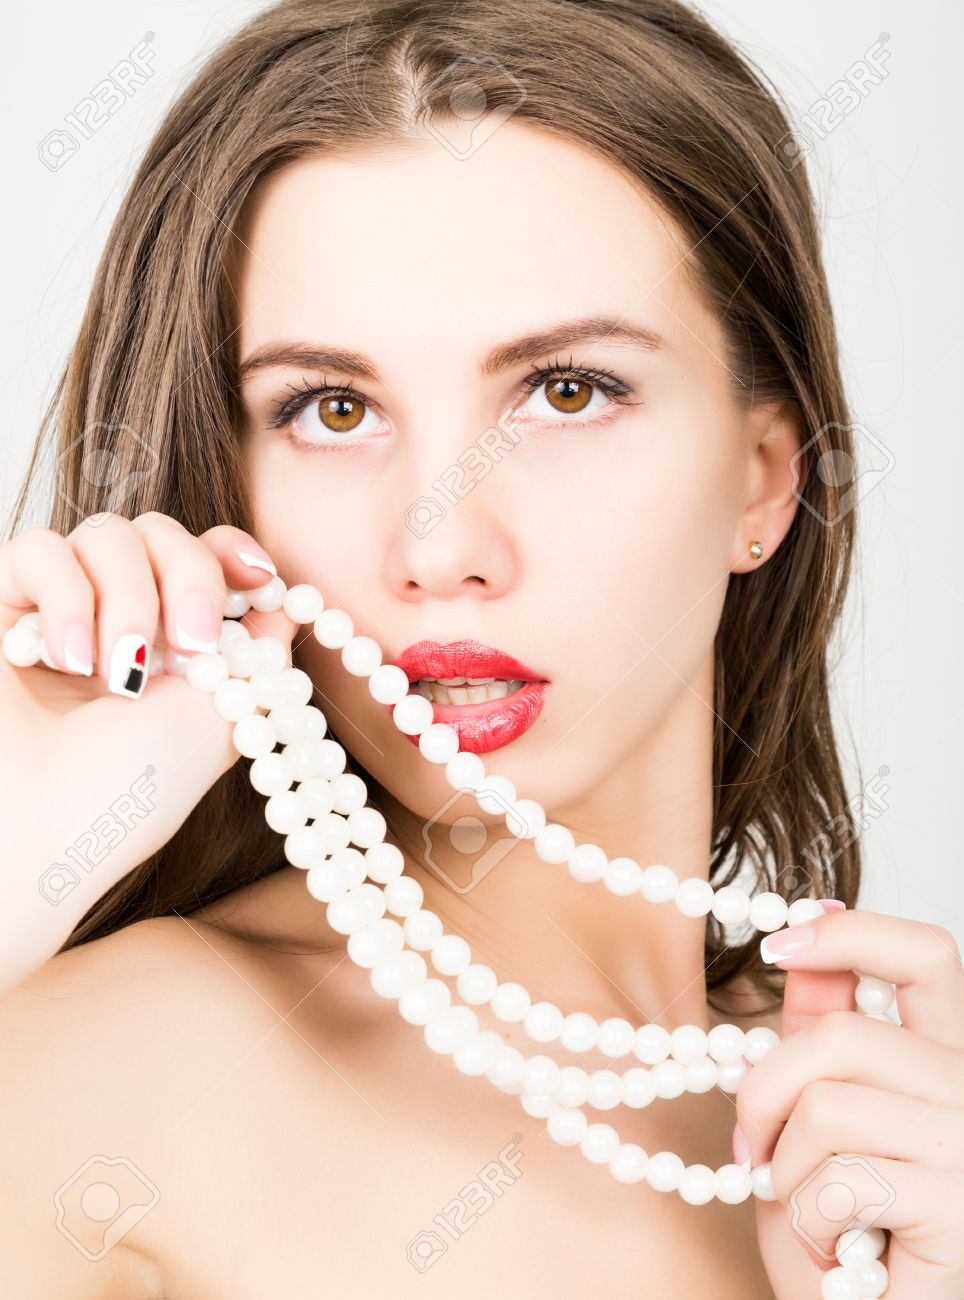 Stock Photo  Closeup Portrait Of A Beautiful Girl With Red Lips, Holding  A Pearl Necklace Mouth Open, Pearls Touches Her Lips